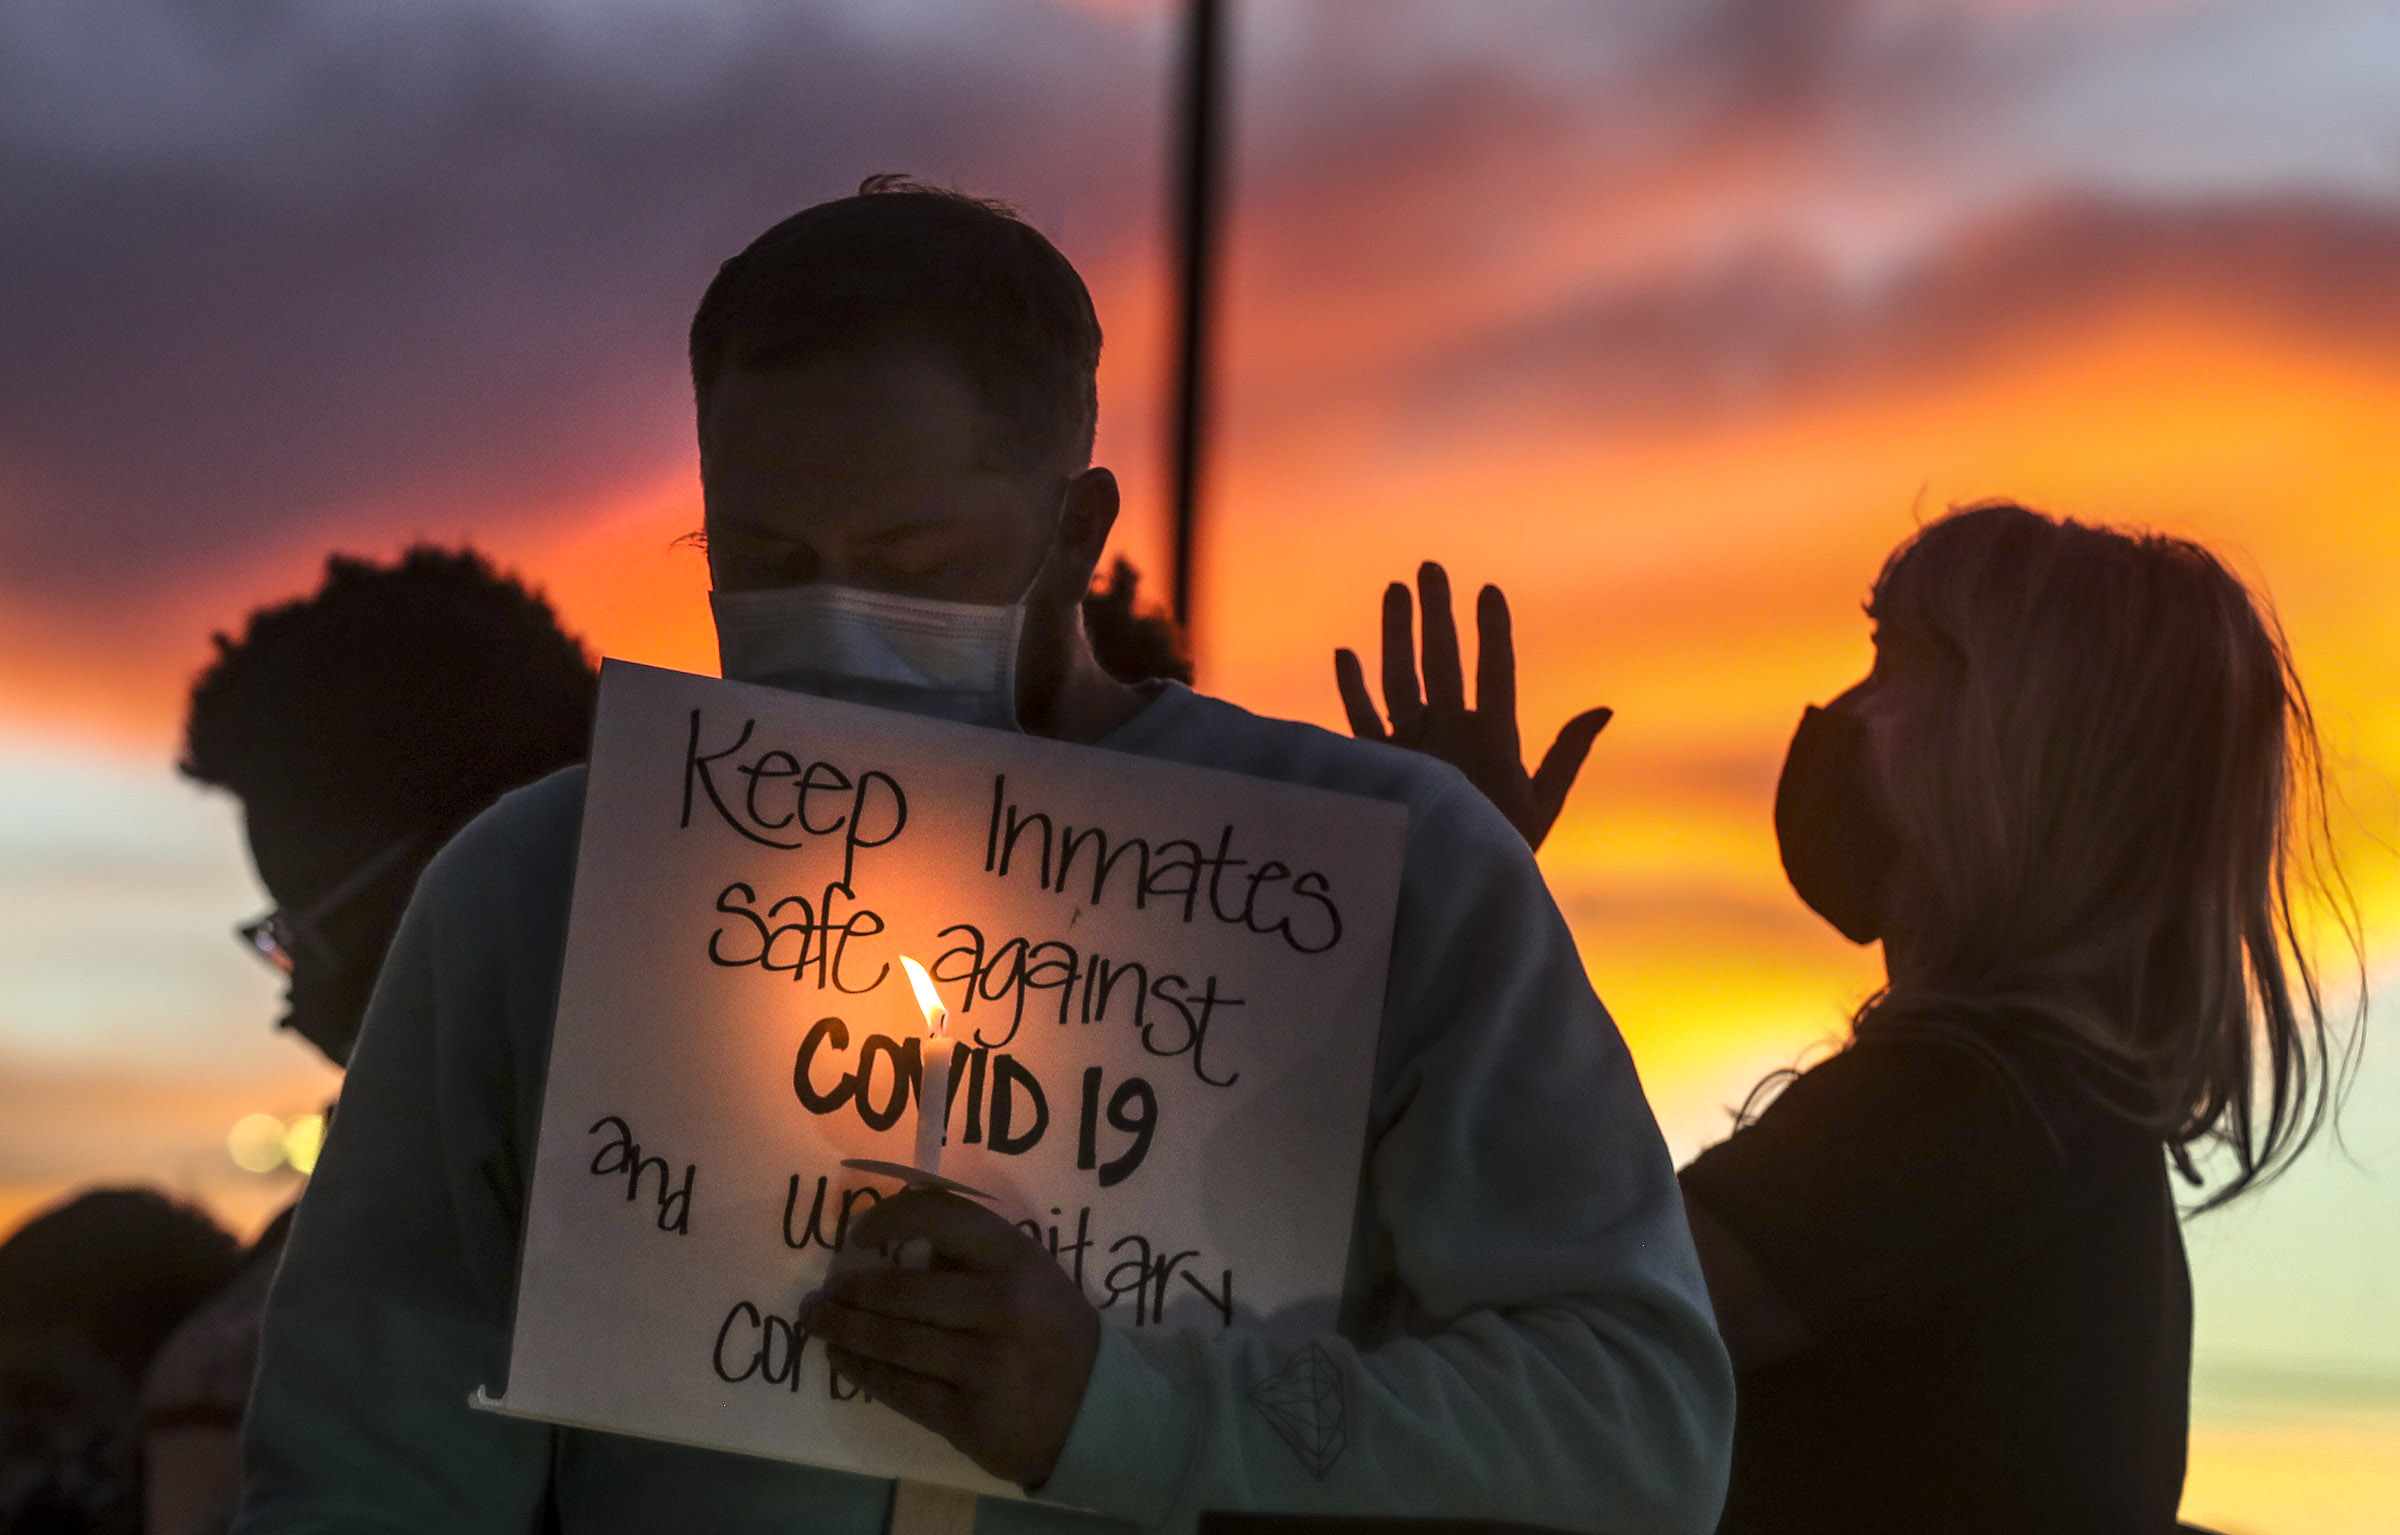 Family members of inmates incarcerated in the Utah Department of Corrections' prison system hold candles and say a prayer following a rally outside the Department of Corrections office in Draper on Tuesday, Oct. 13, 2020. The group was there to share concerns about the department's handling of the COVID-19 outbreak.